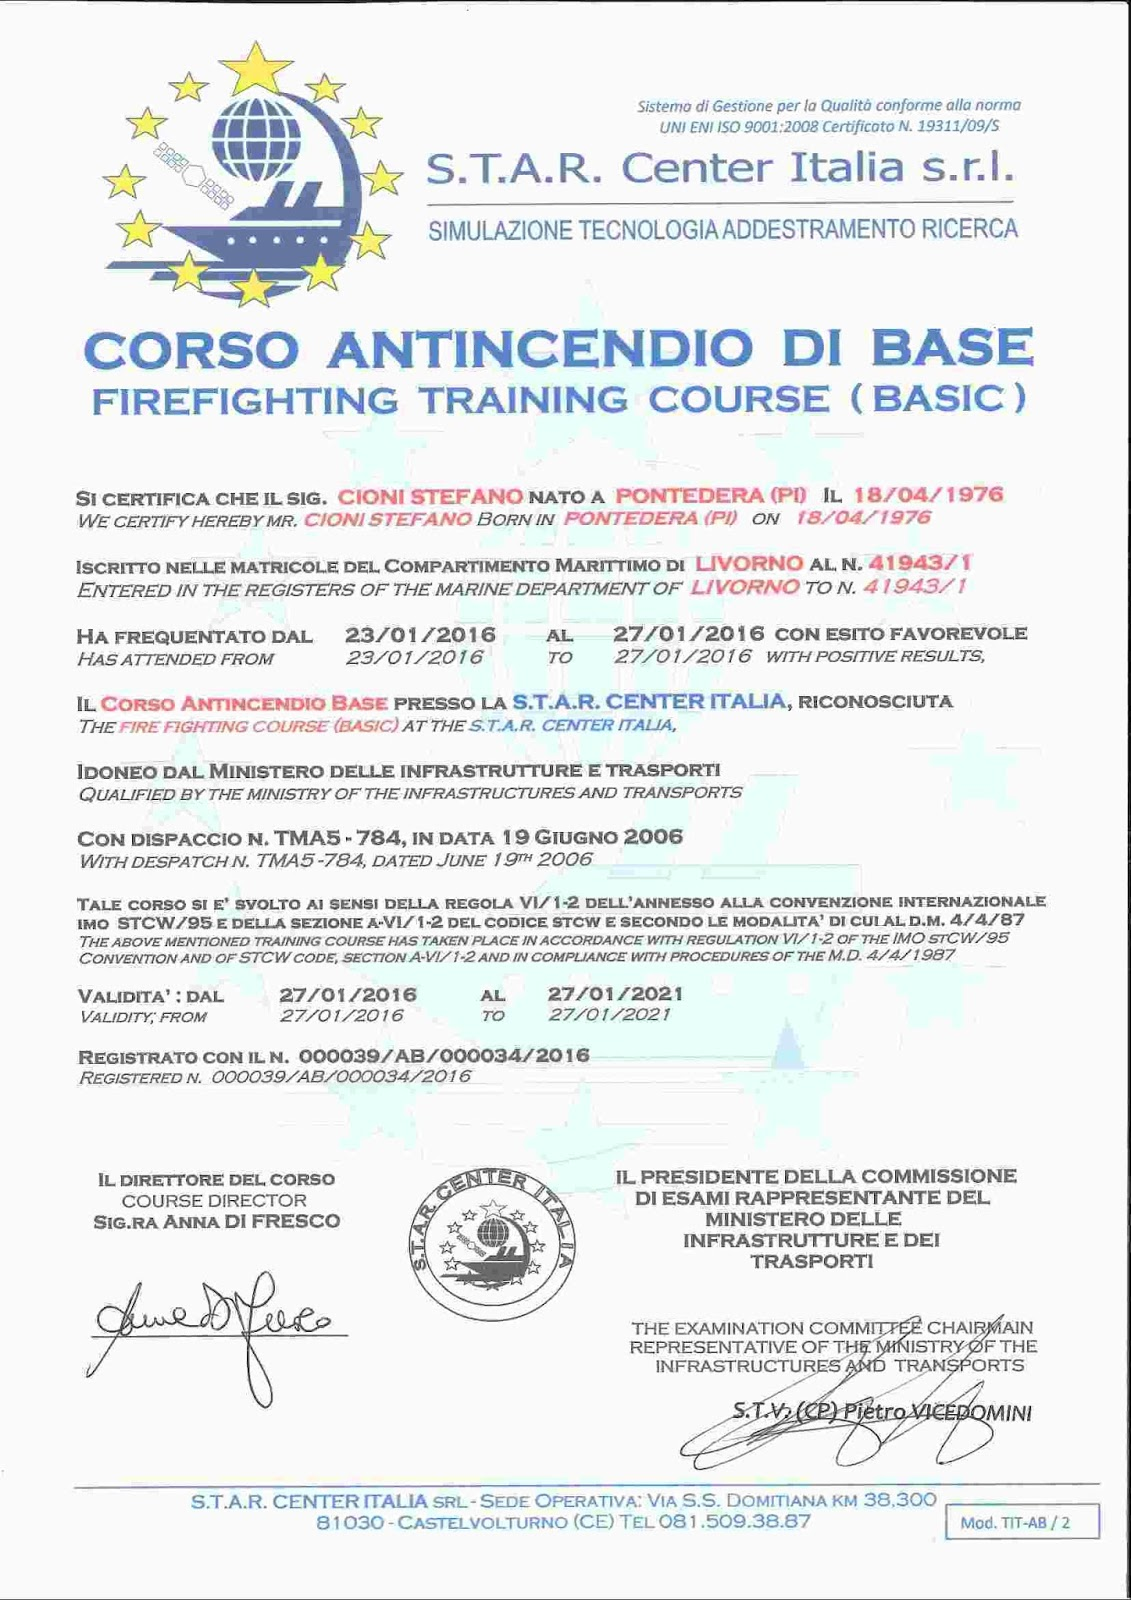 Capt stefano cioni mca master 200 gt rya yachtmaster ocean rya imo stcw security duty officier certificate 1betcityfo Choice Image